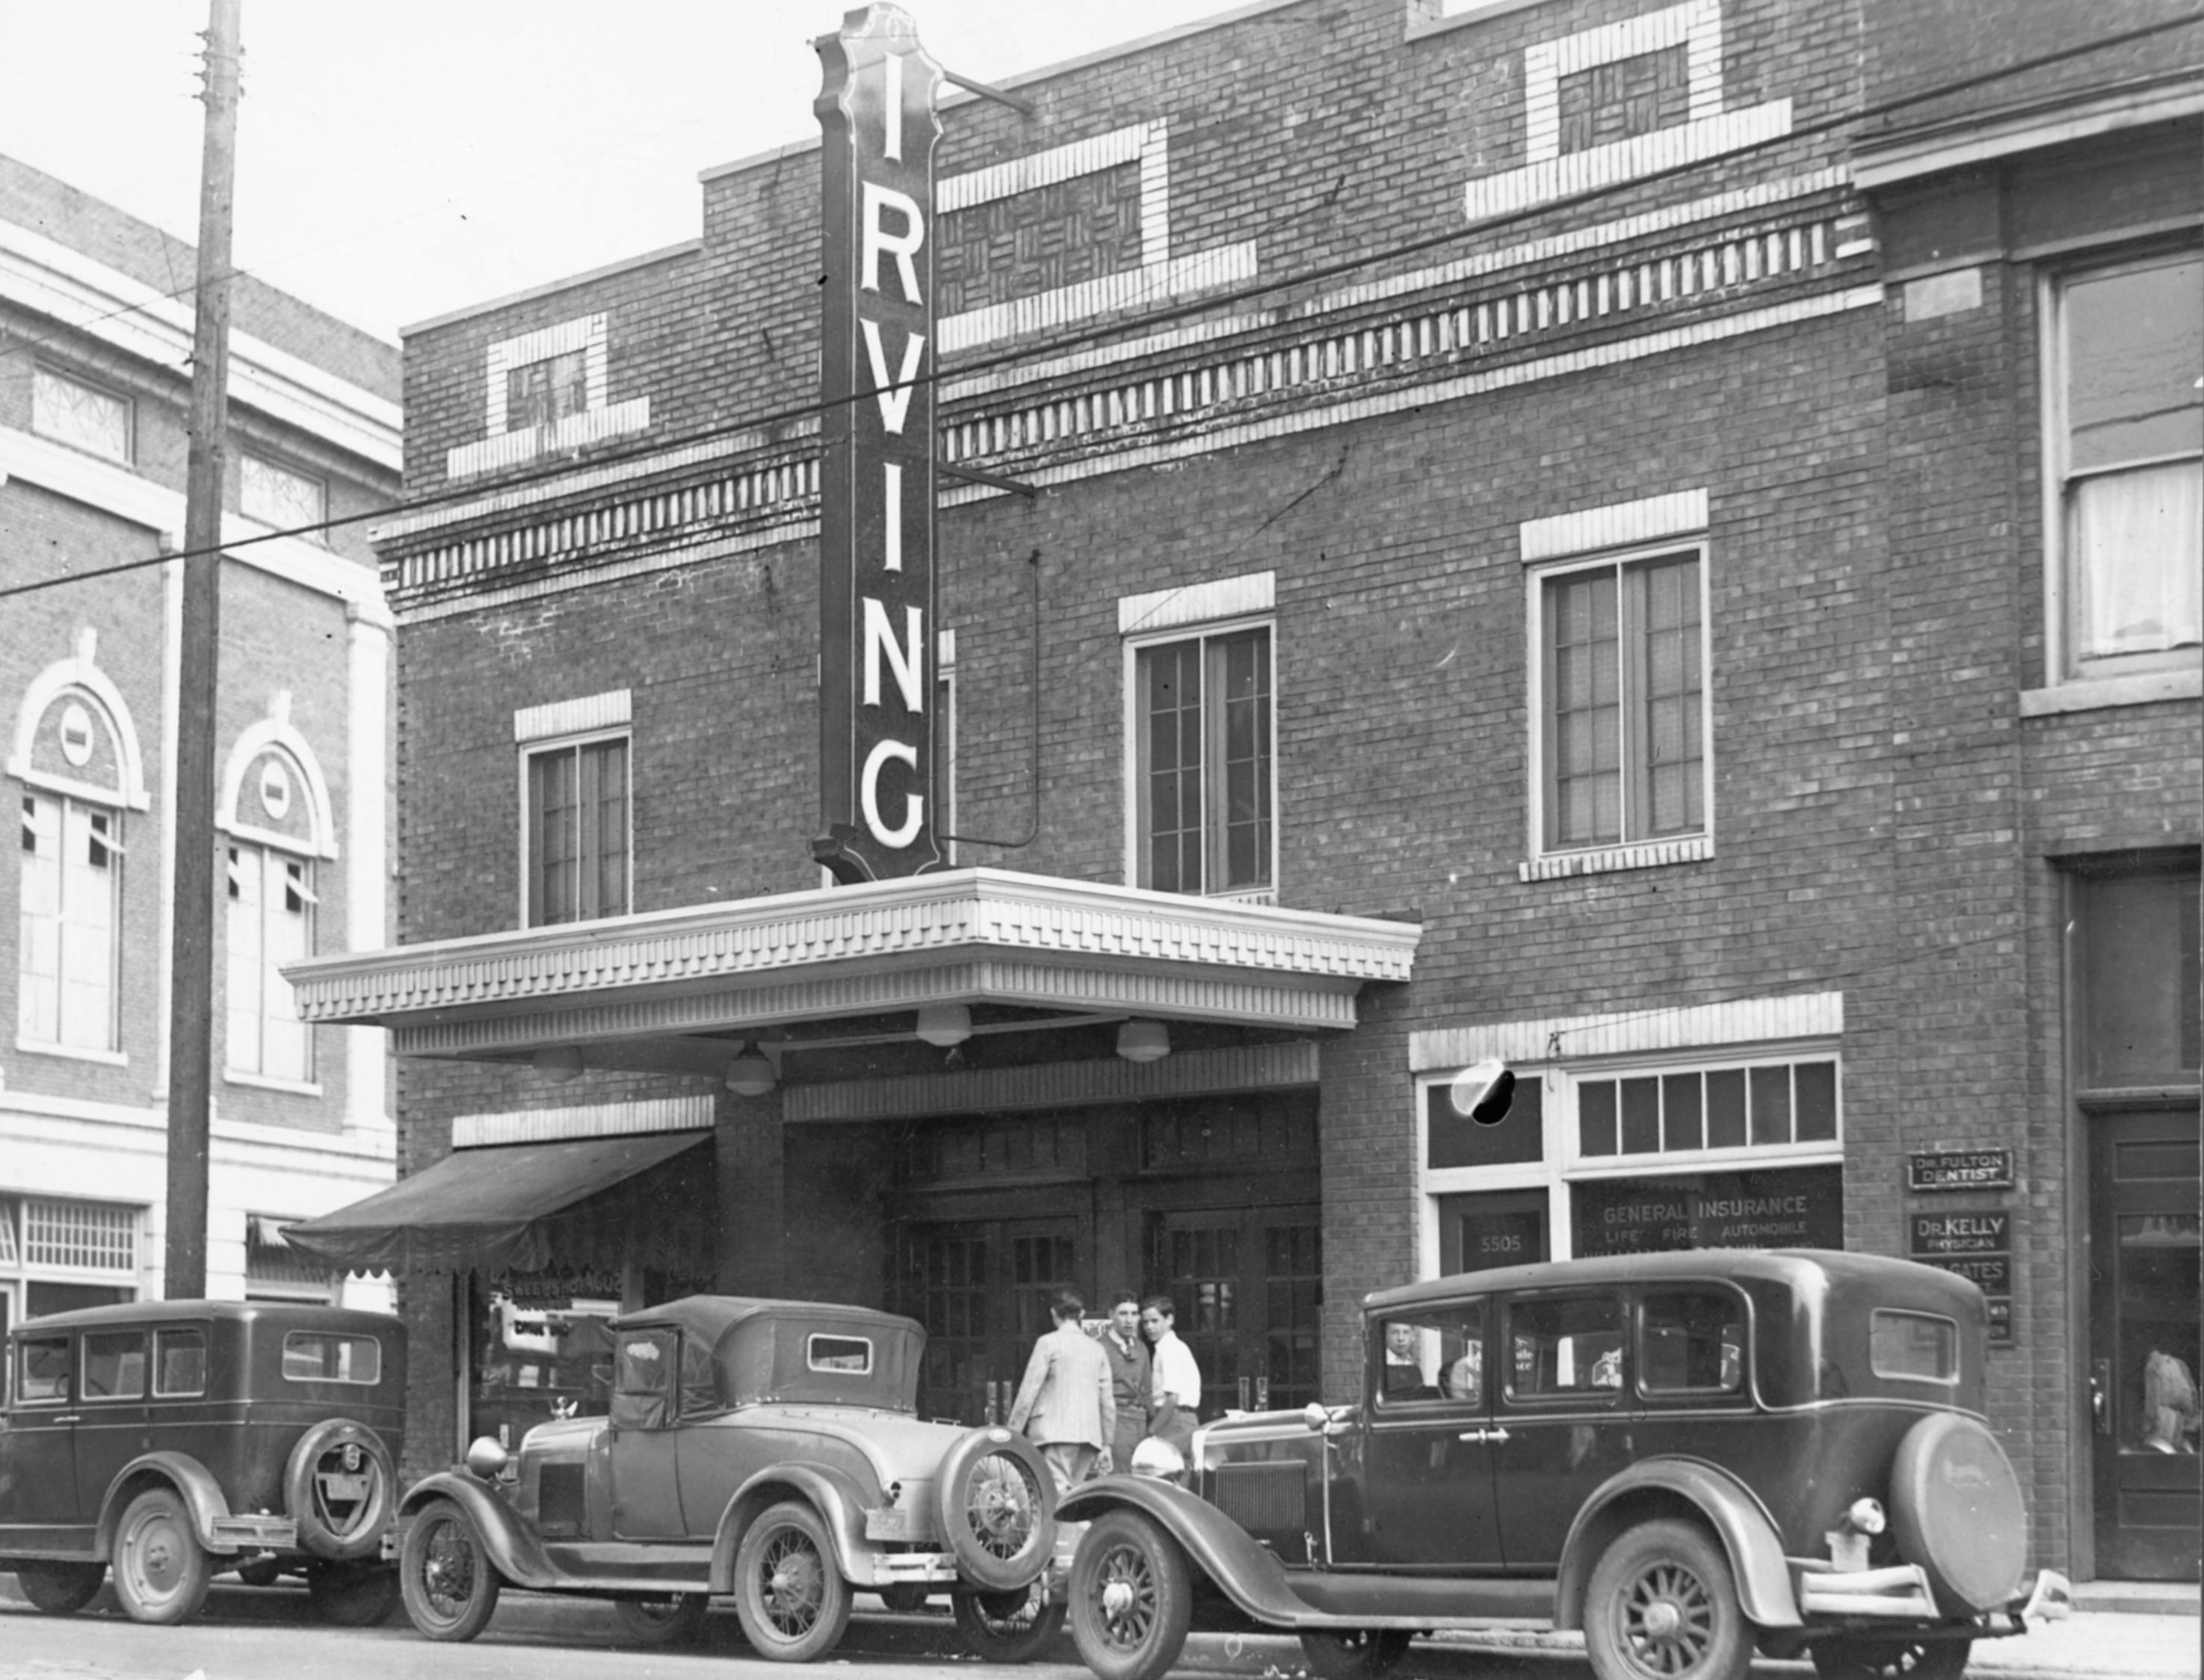 May 13, 1929 -- The Irving Theatre in Indianapolis, Indiana.